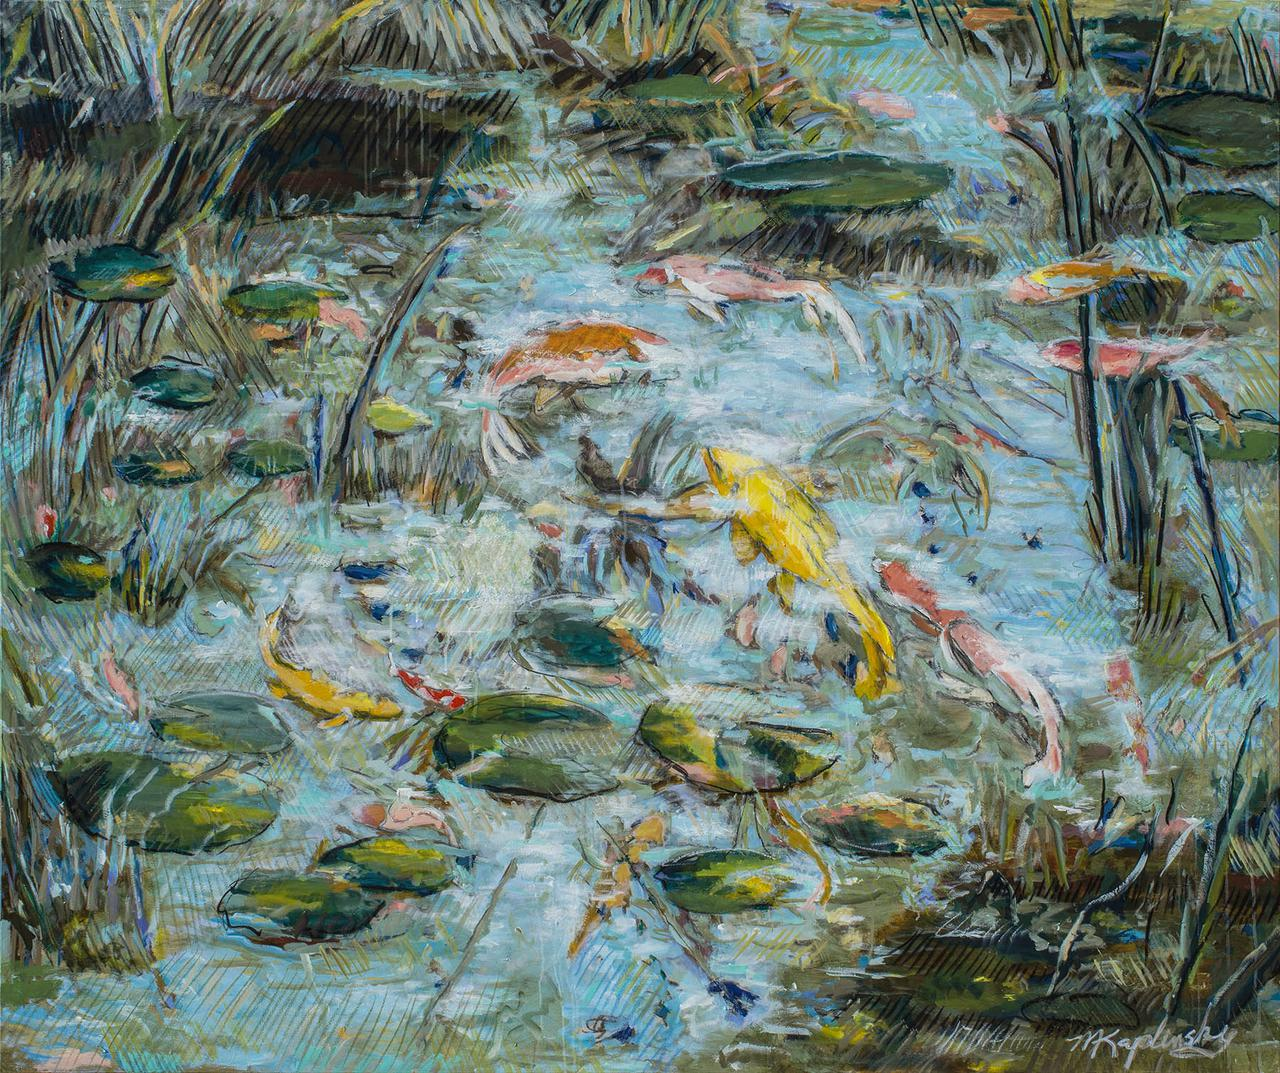 portfolio/Arboretum Koi Pond - 60x72 acrylic on canvas by Matt Kaplinsky.jpg